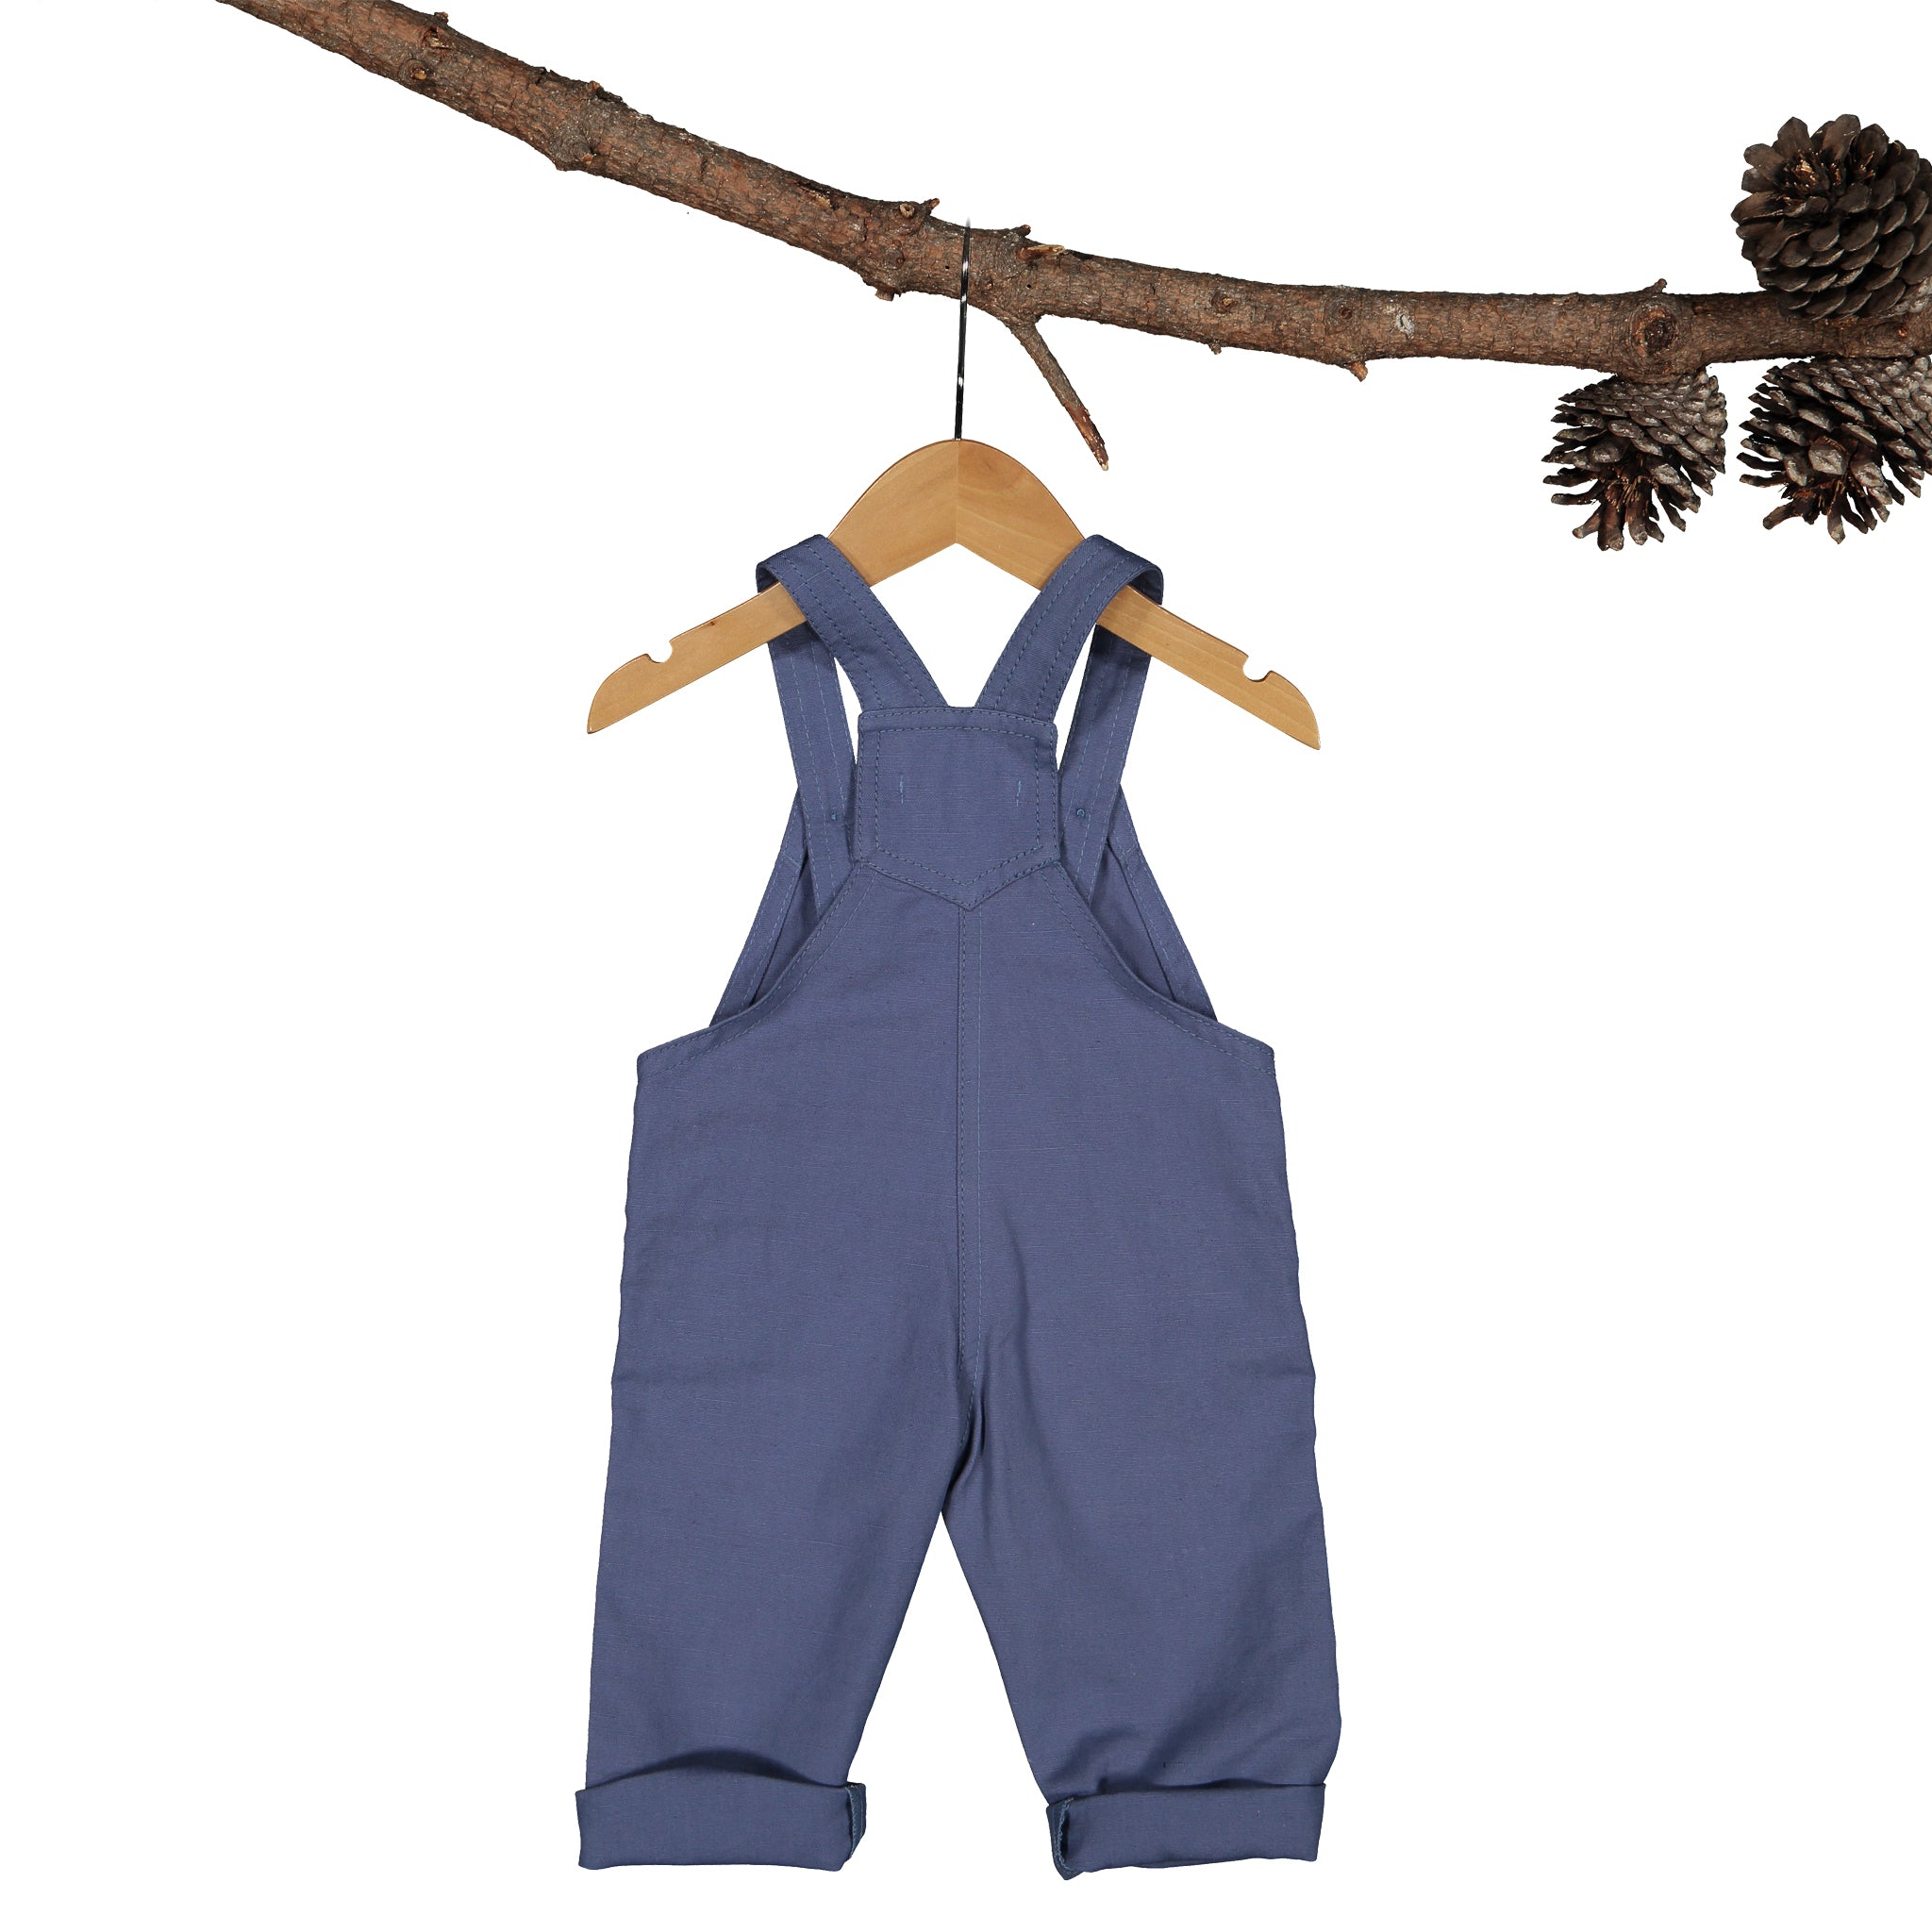 Dungaree - Rupert Linen Canvas Air-Force Blue